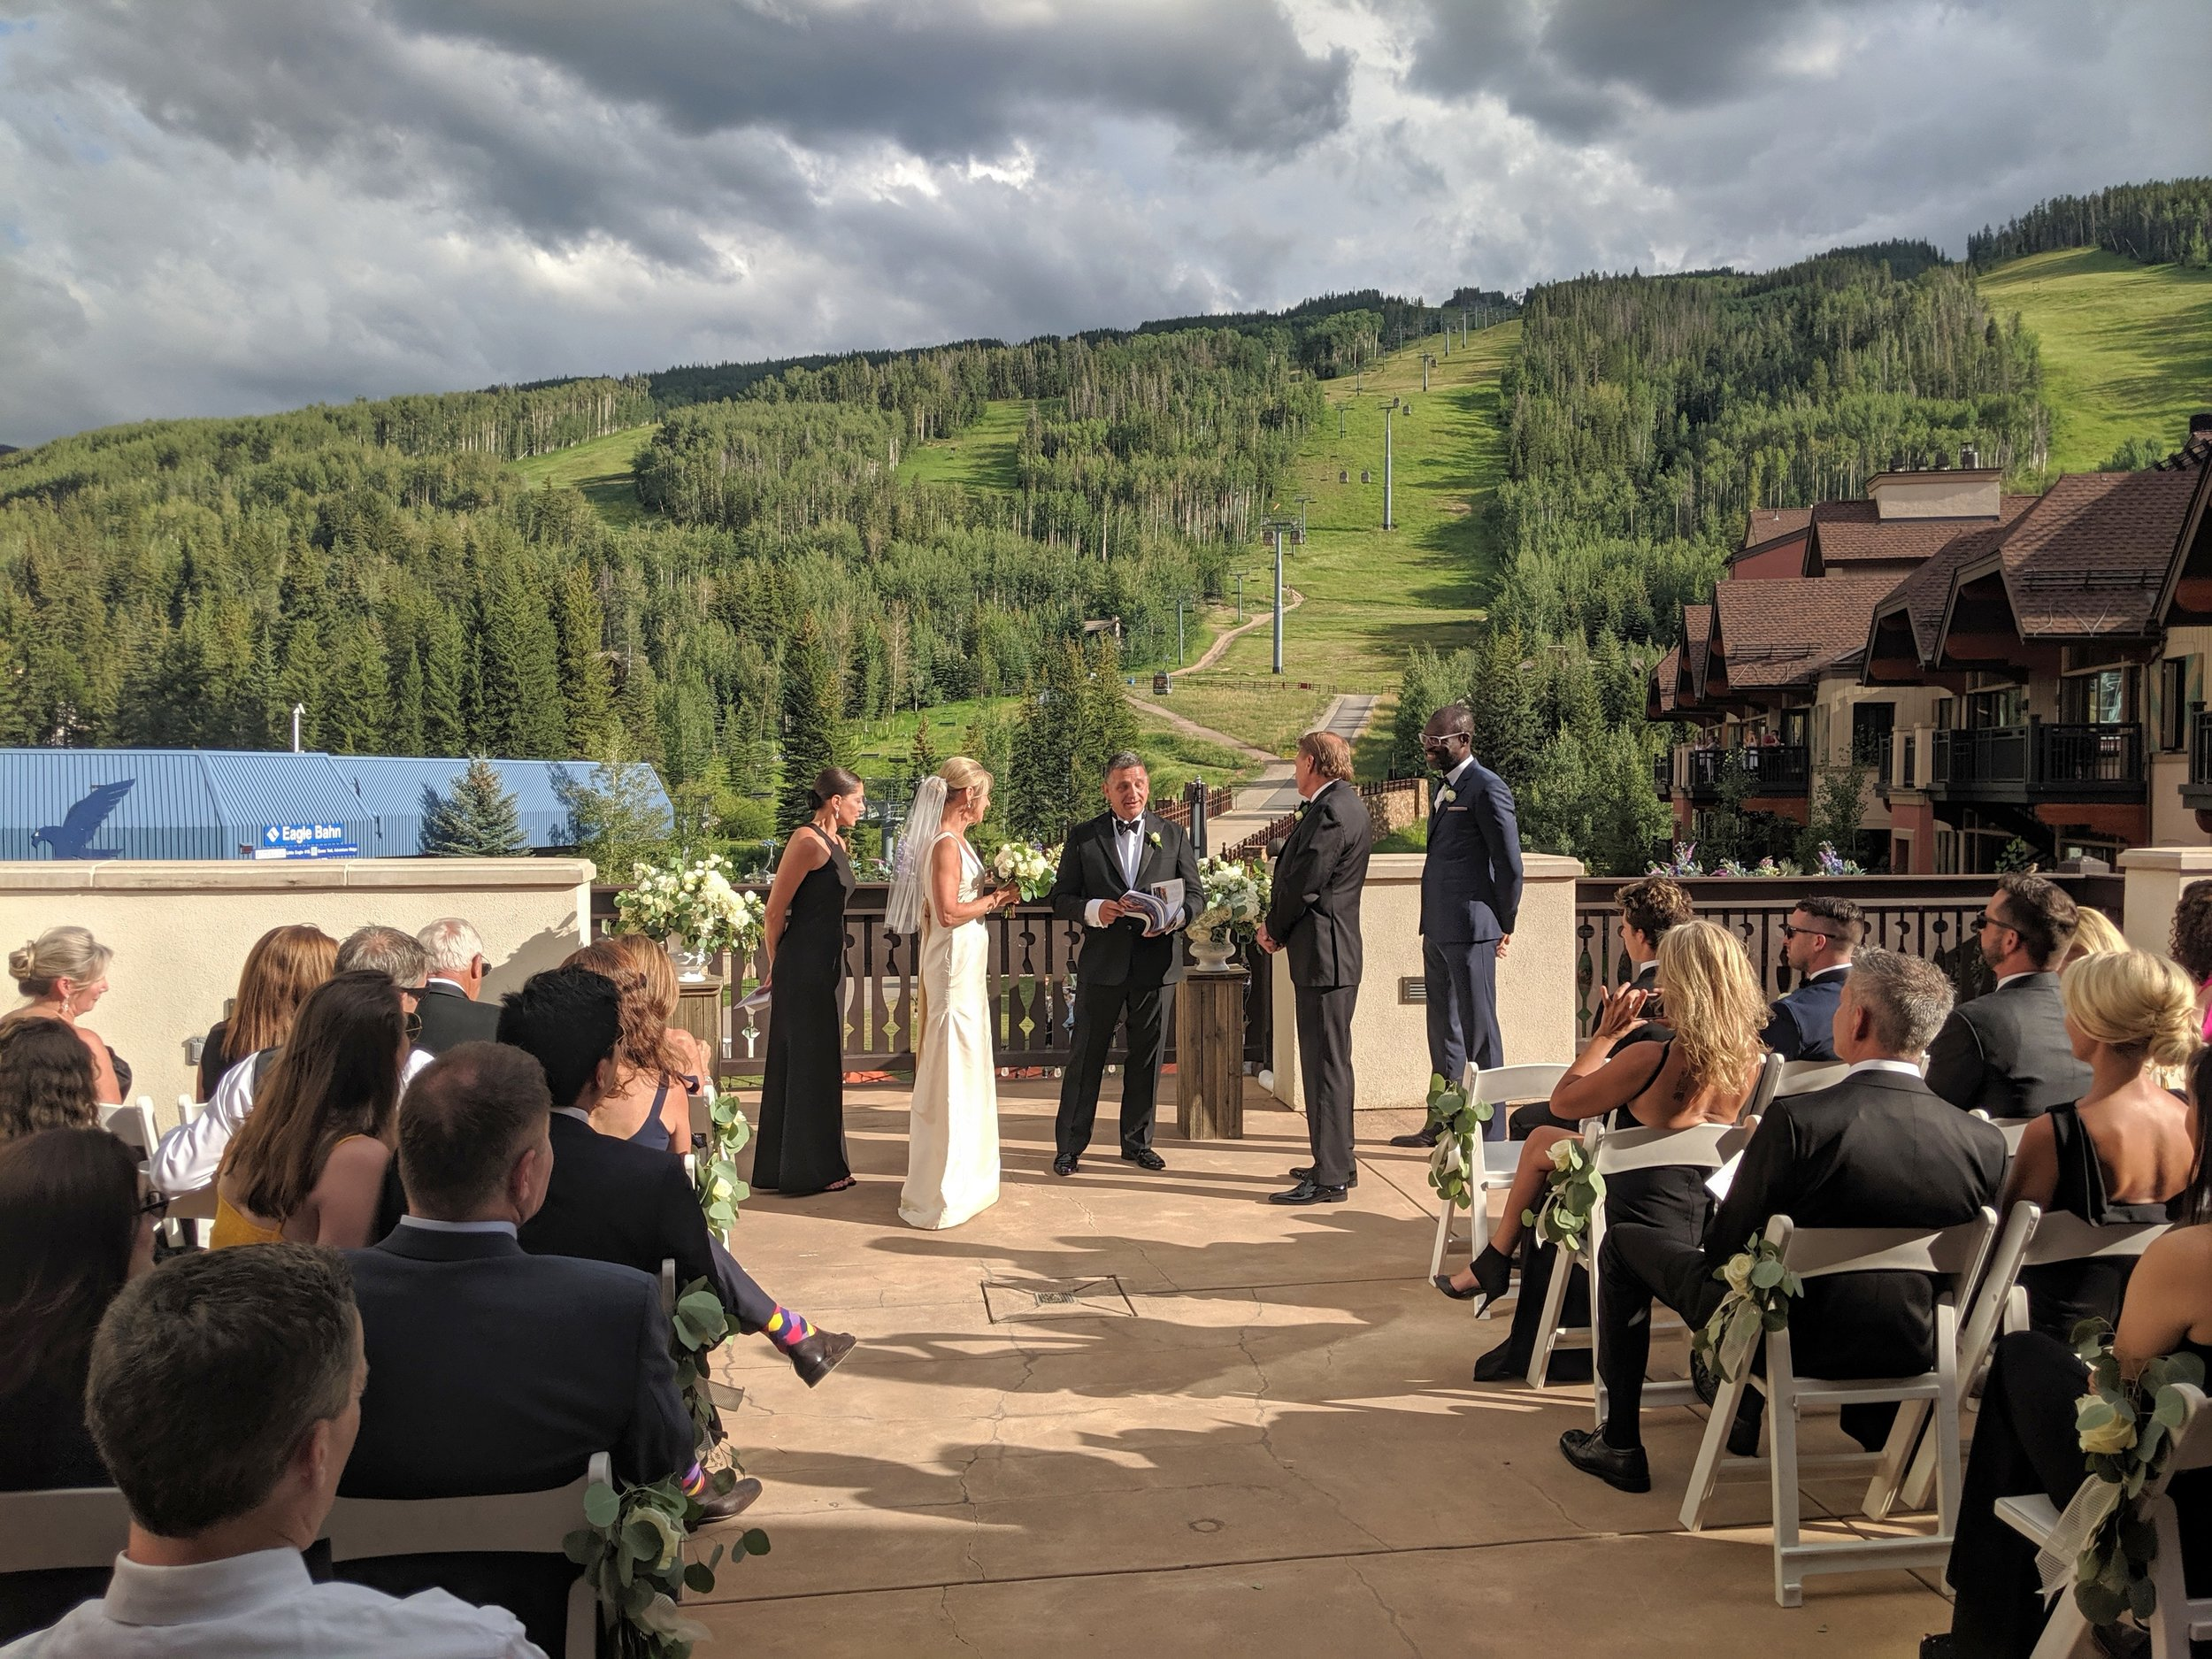 Flute and Strings by Christen Stephens, Flute and Violin Wedding Ceremony Music at the Arrabelle at Vail Square in Vail, Colorado